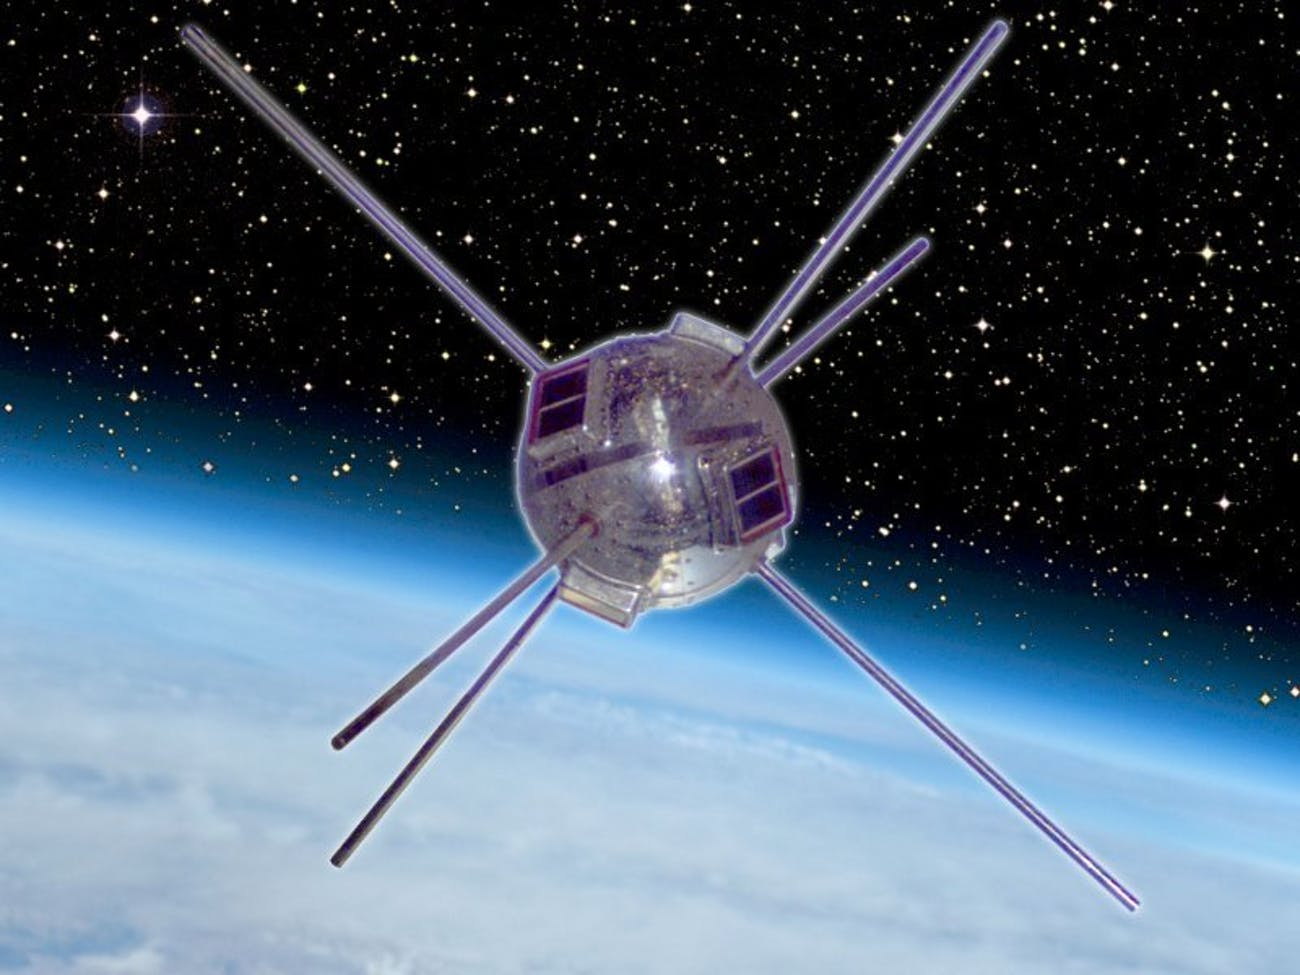 This little guy, Vanguard 1, was a solar pioneer.